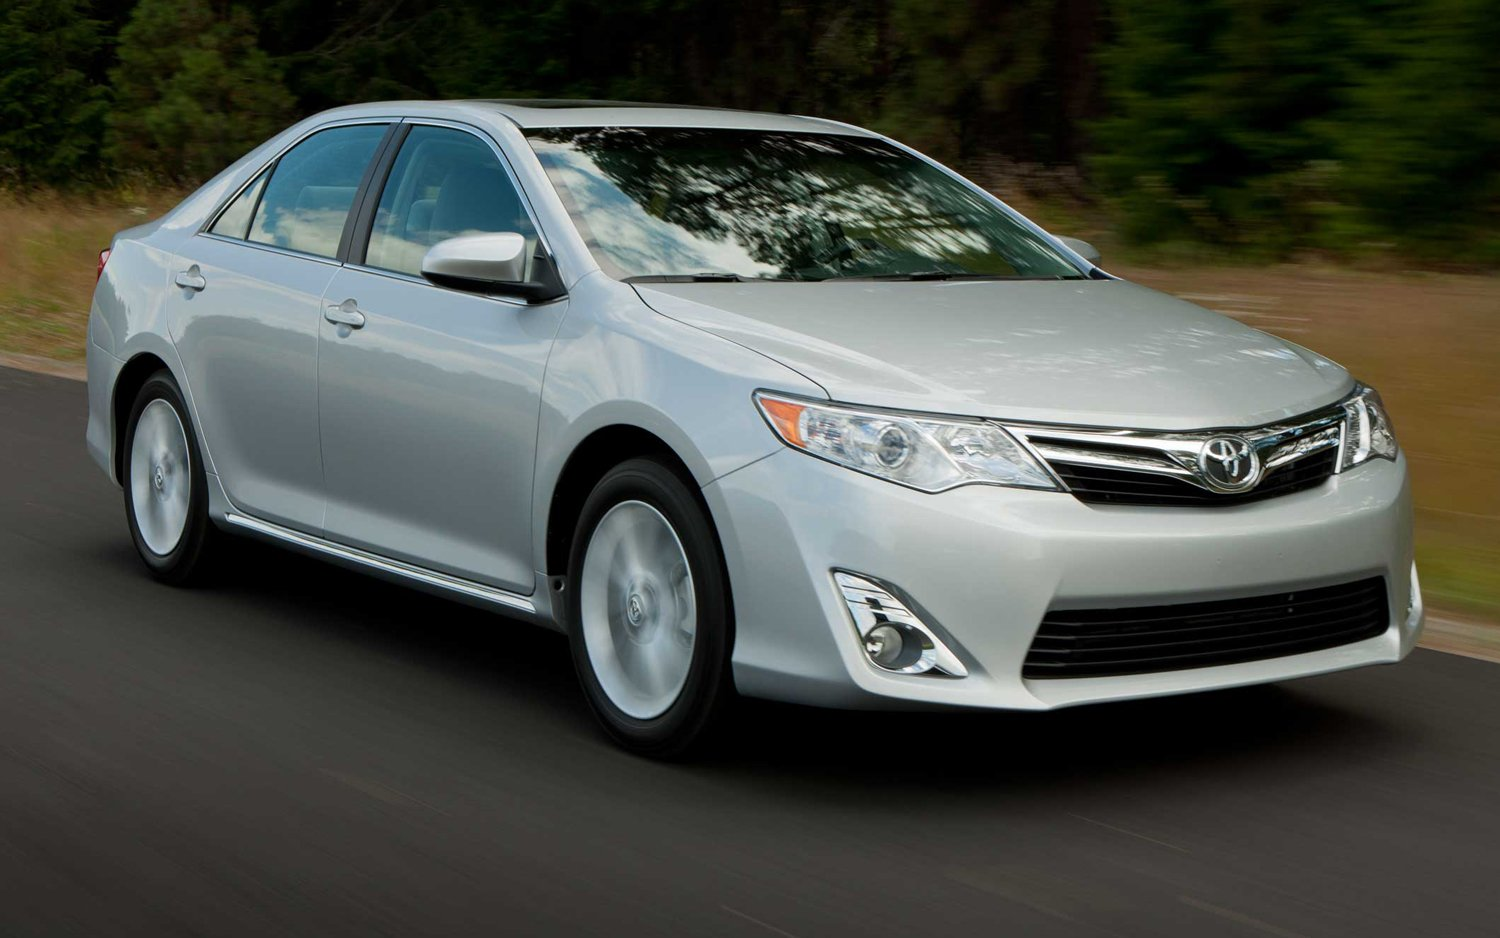 Toyota Camry 2013 new